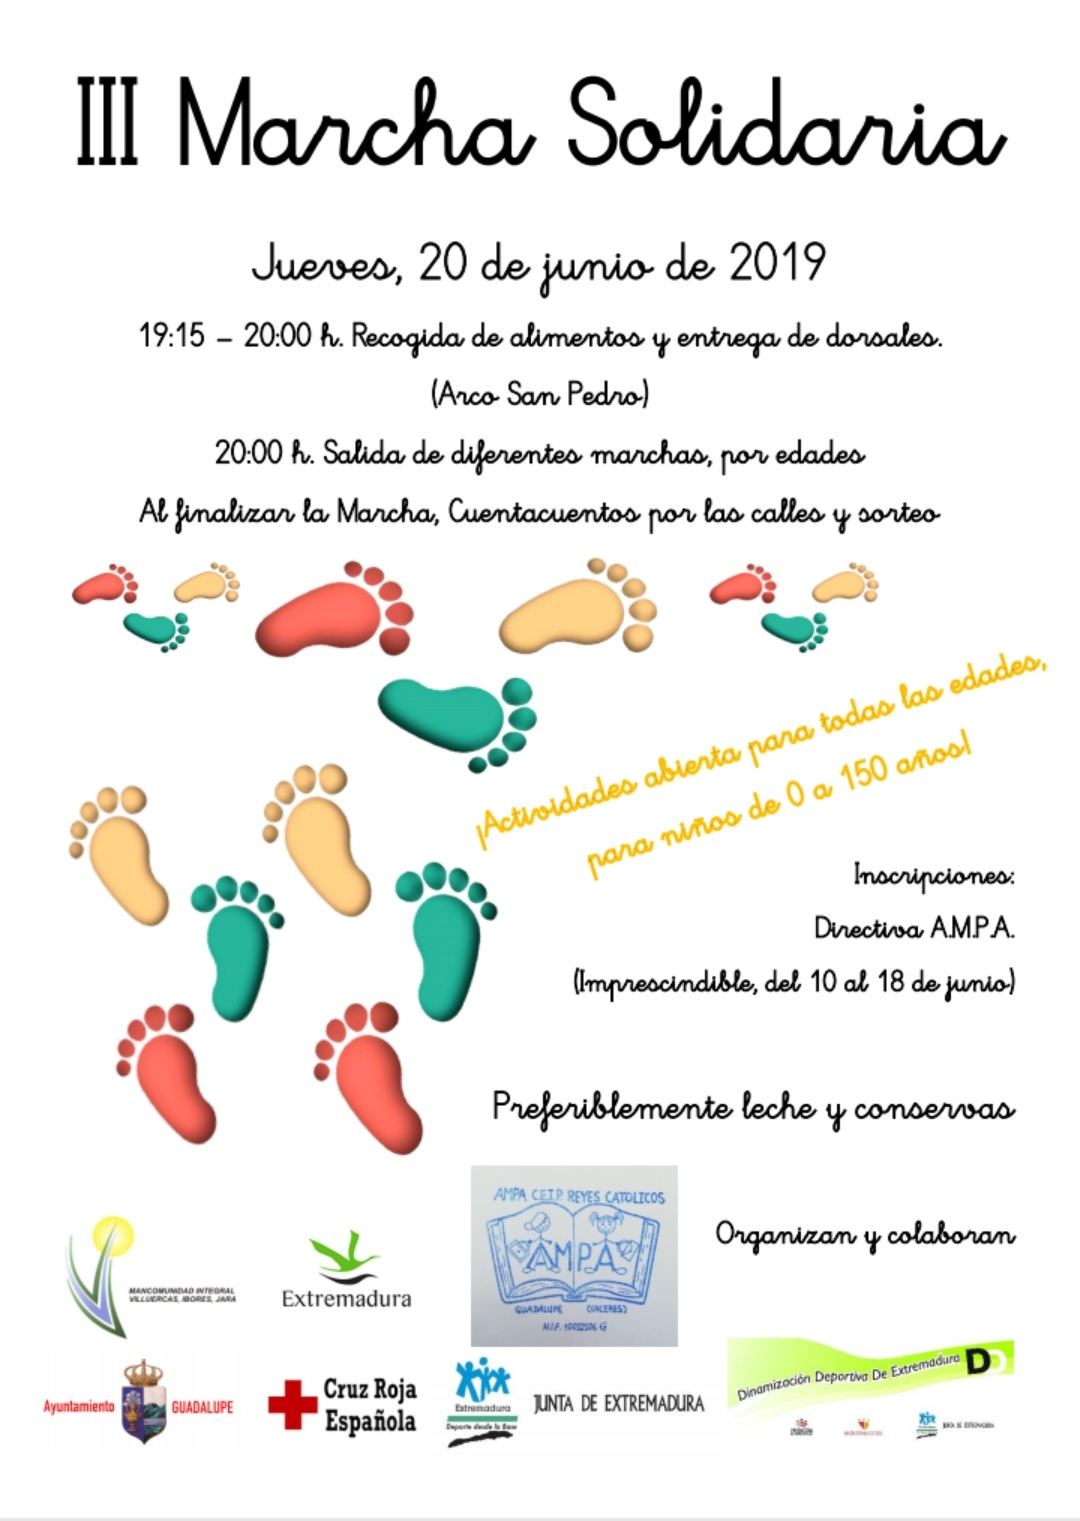 III Marcha solidaria - Guadalupe (Cáceres)